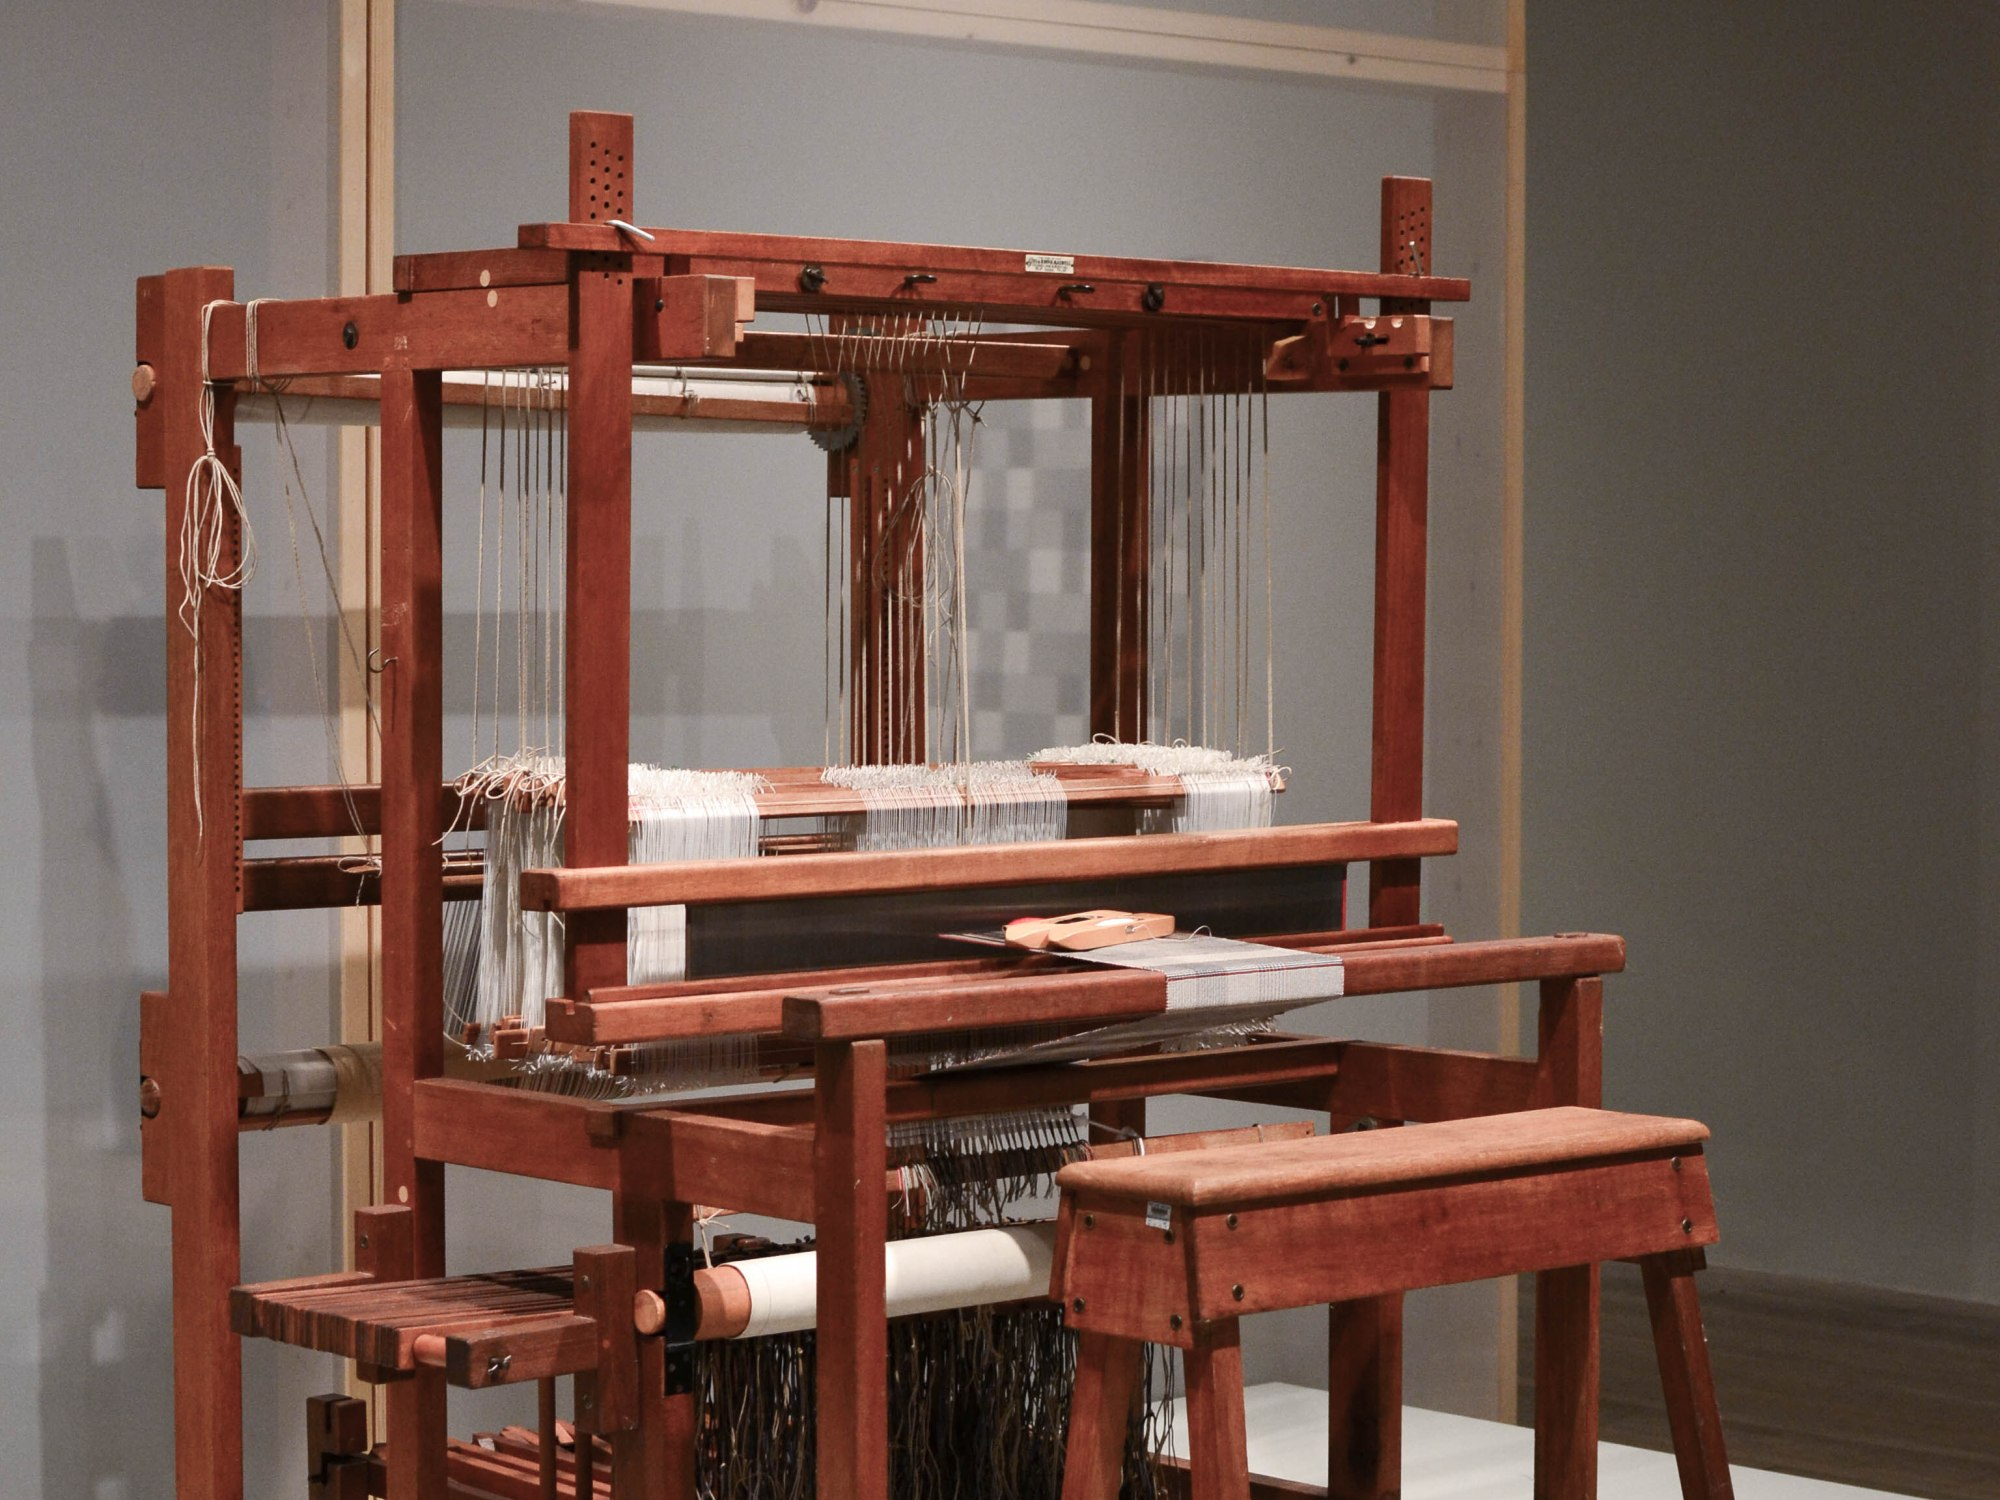 A loom at the Tate – The Common Thread